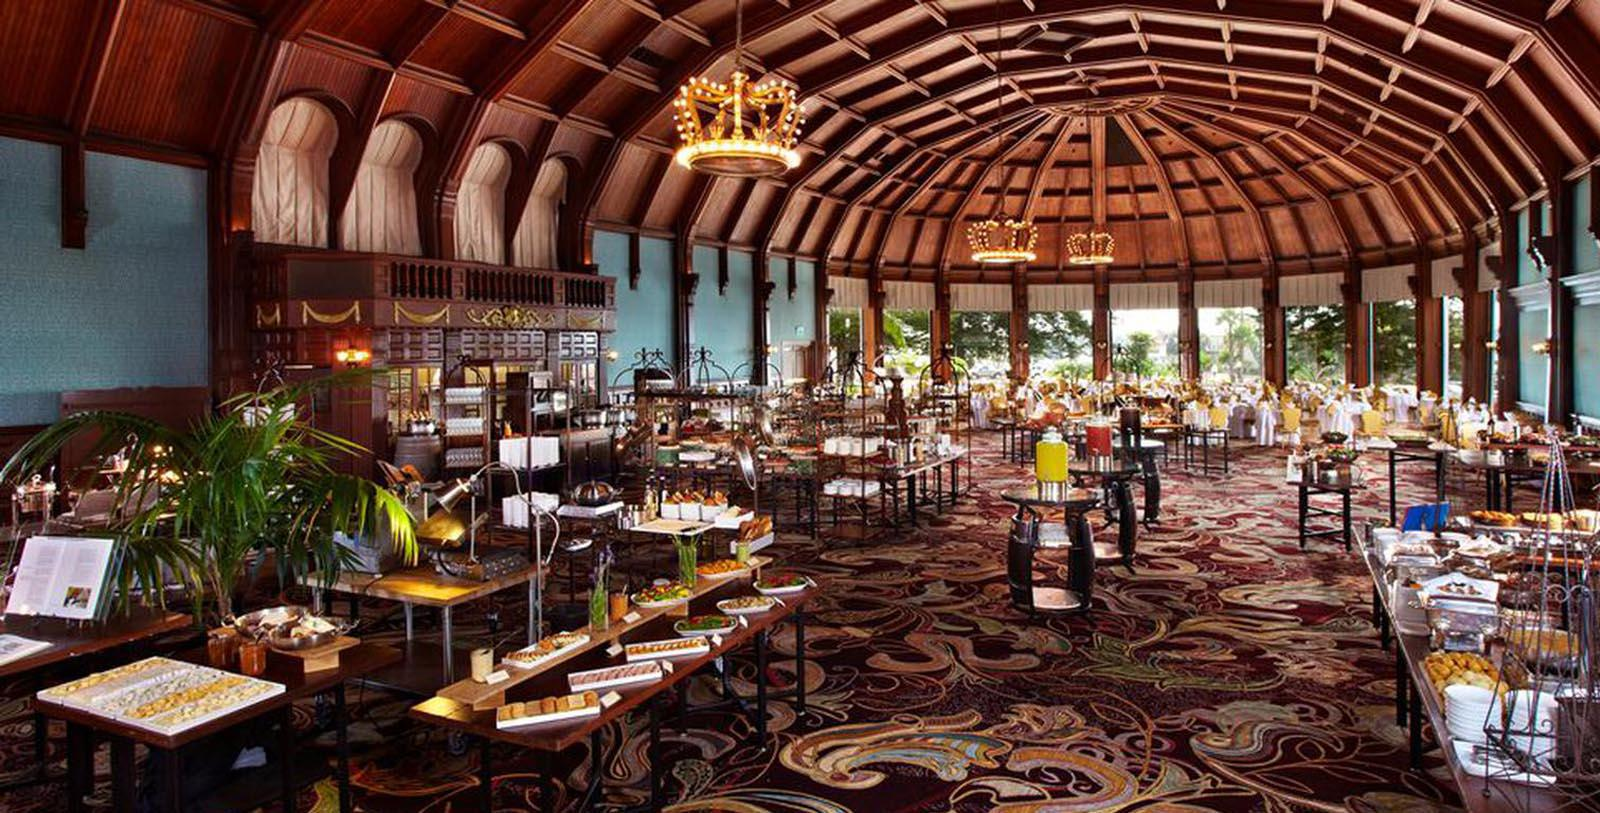 Image of Crown Room, Hotel del Coronado in Coronado, California, 1888, Member of Historic Hotels of America, Taste